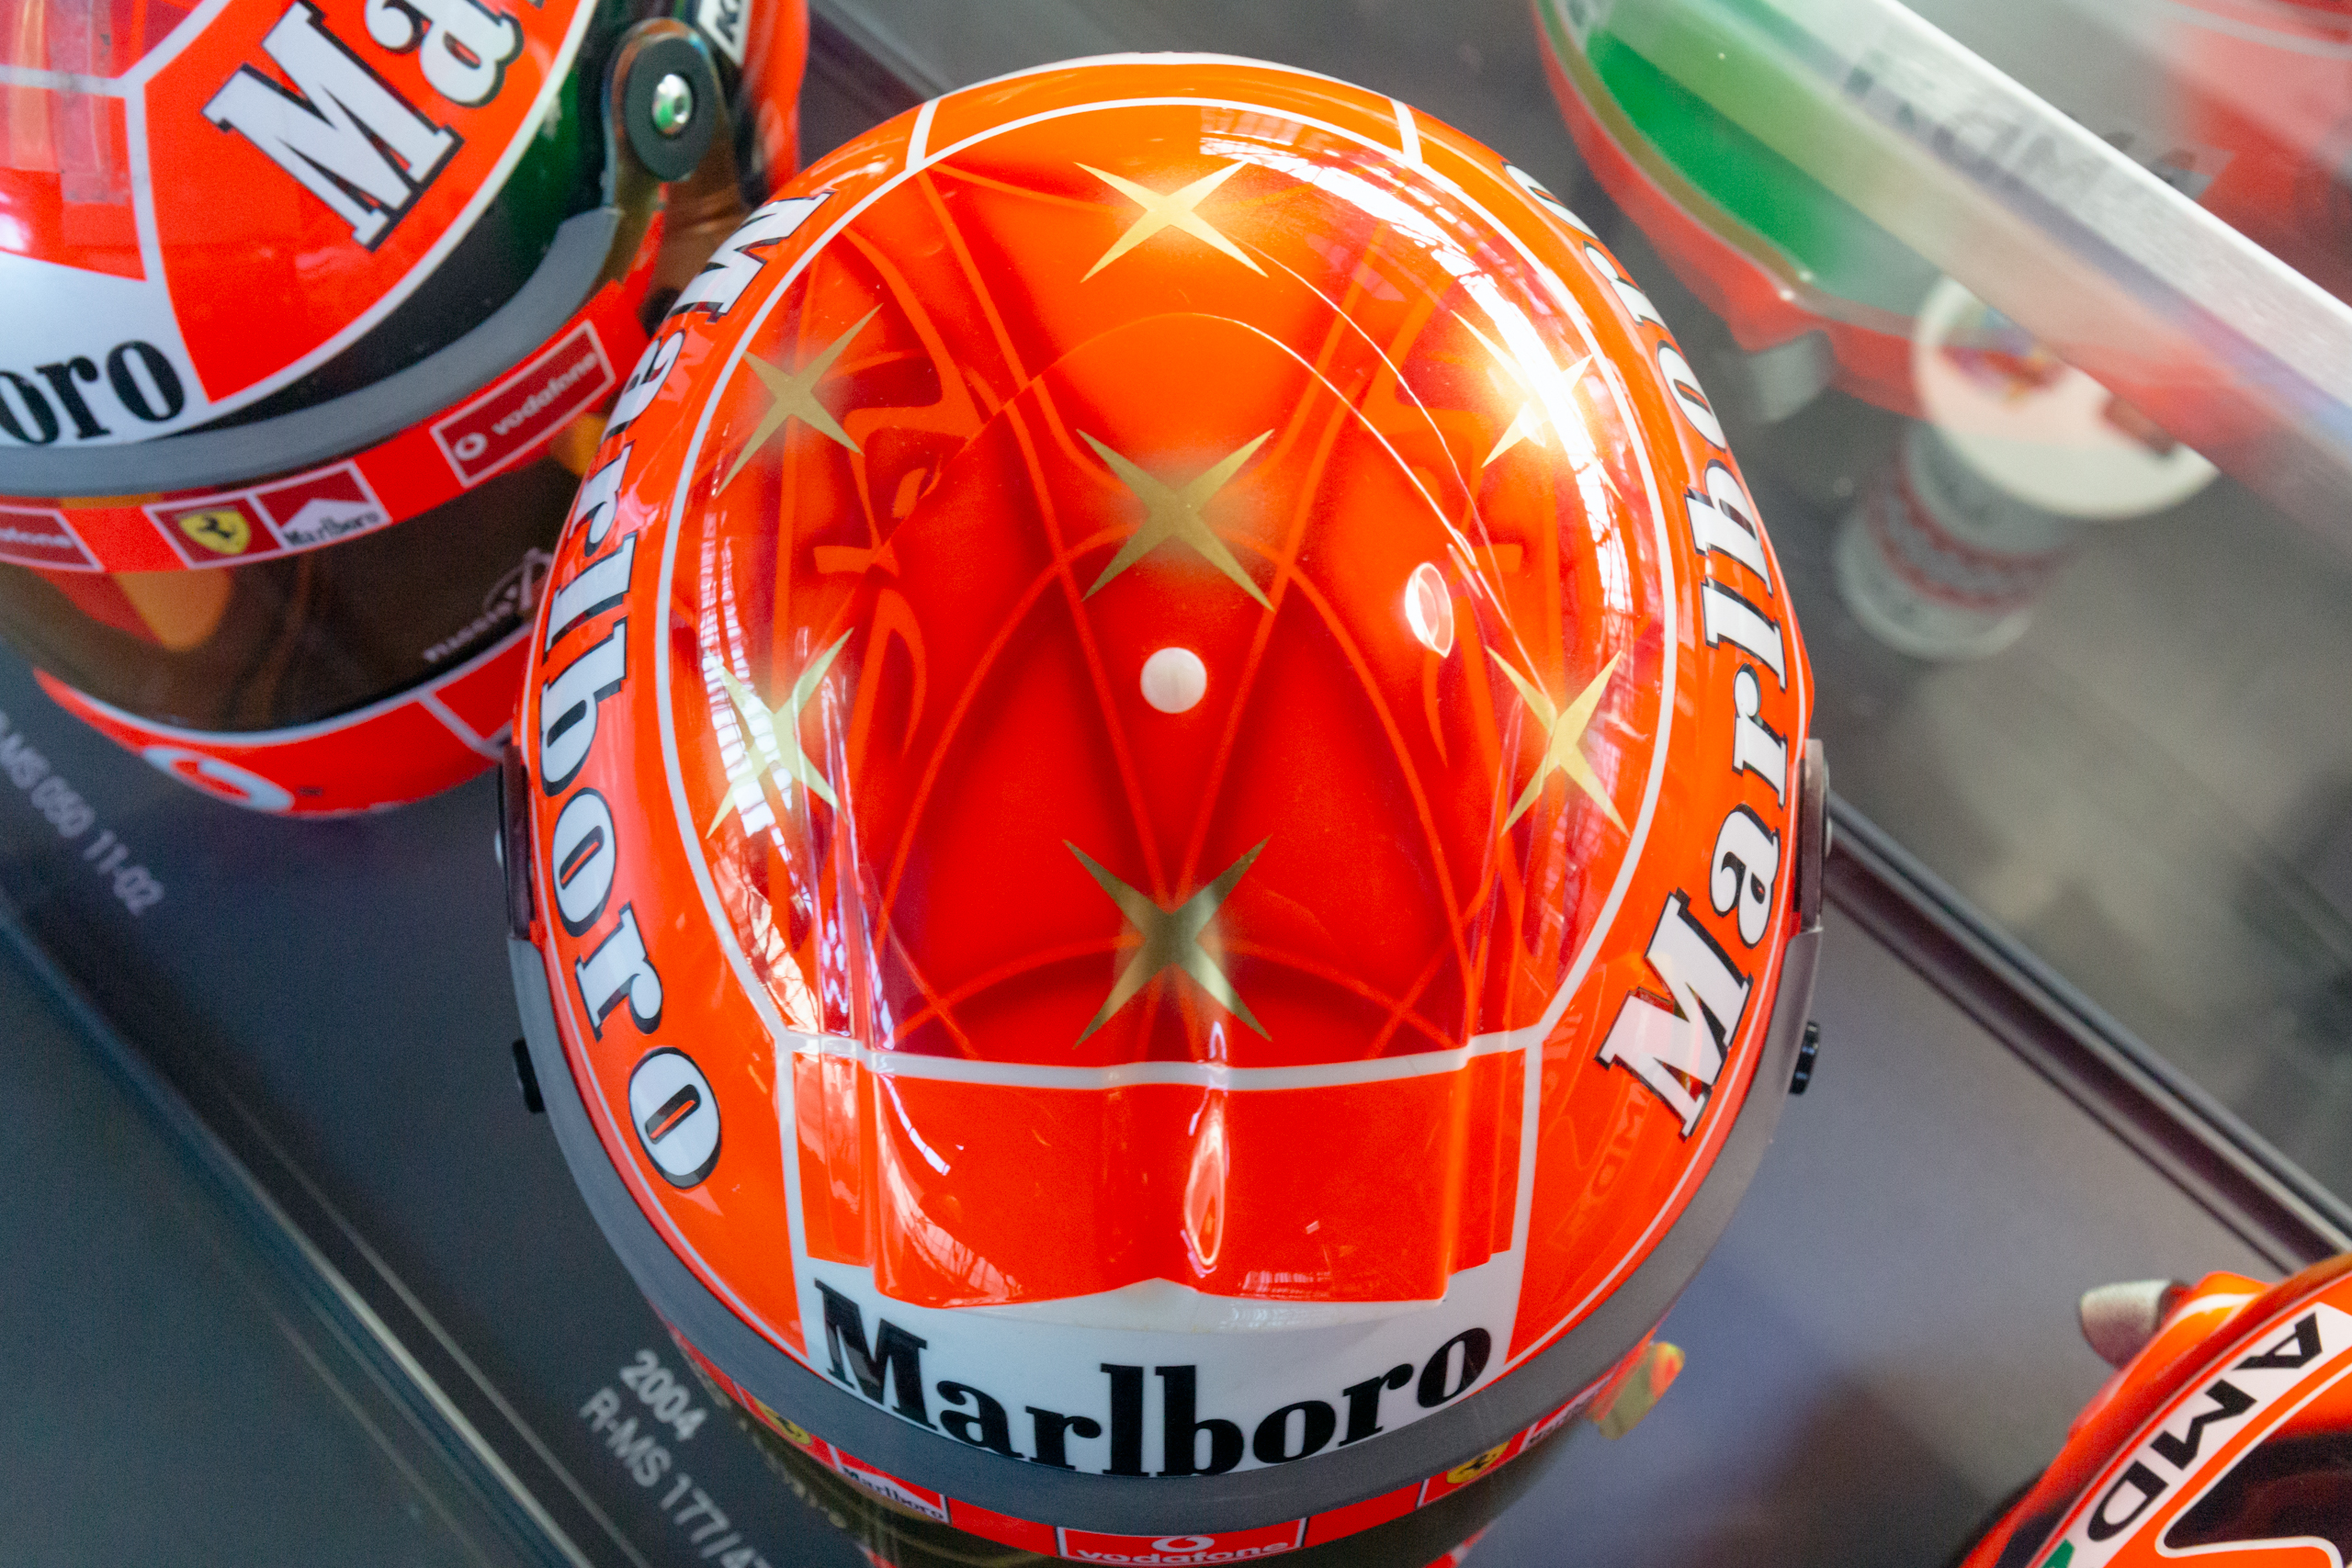 File Michael Schumacher 2004 Italian Gp Helmet Top 2019 Michael Schumacher Private Collection Jpg Wikimedia Commons